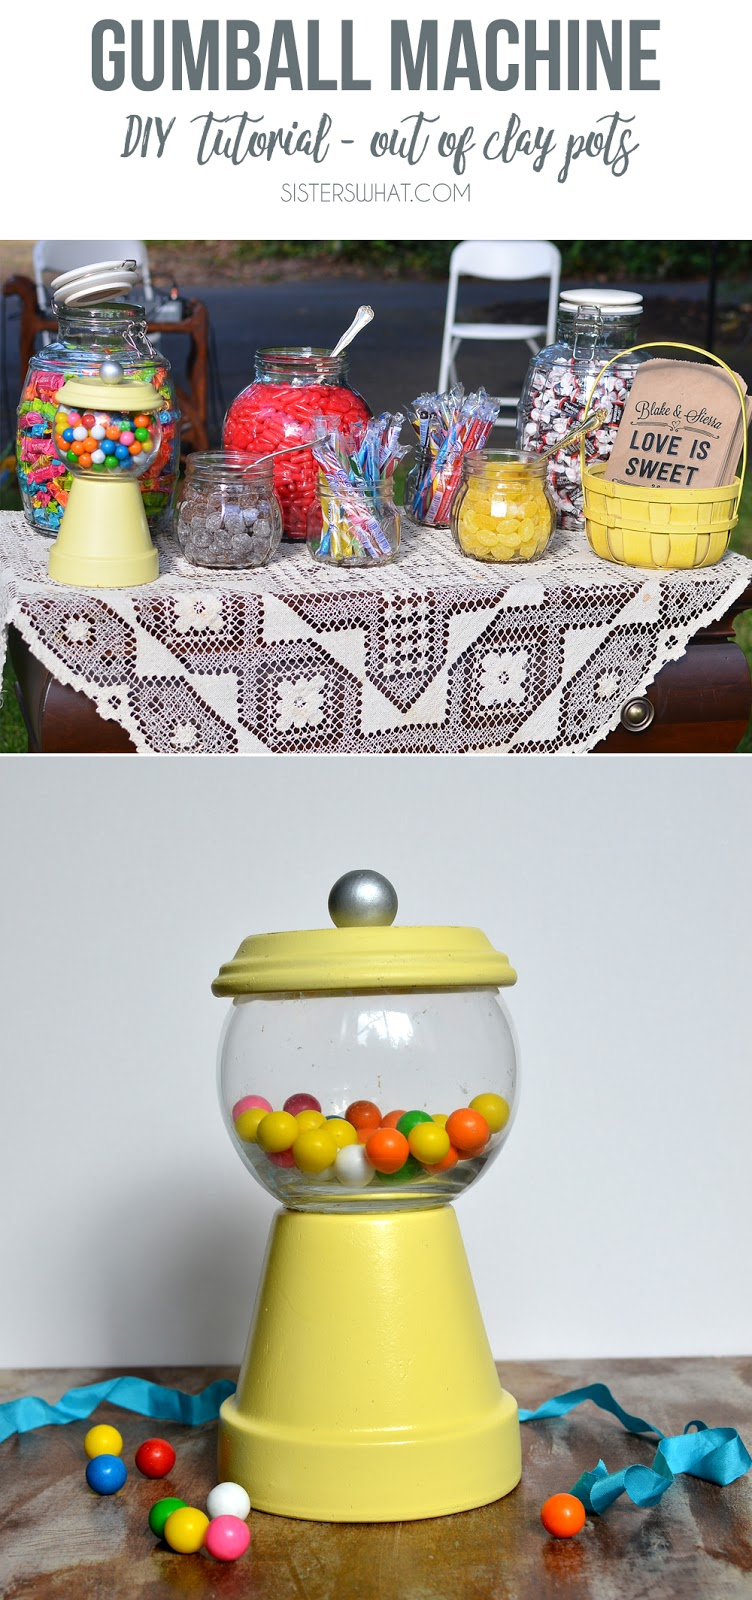 Make a pretend gumball machine out of clay pots!!